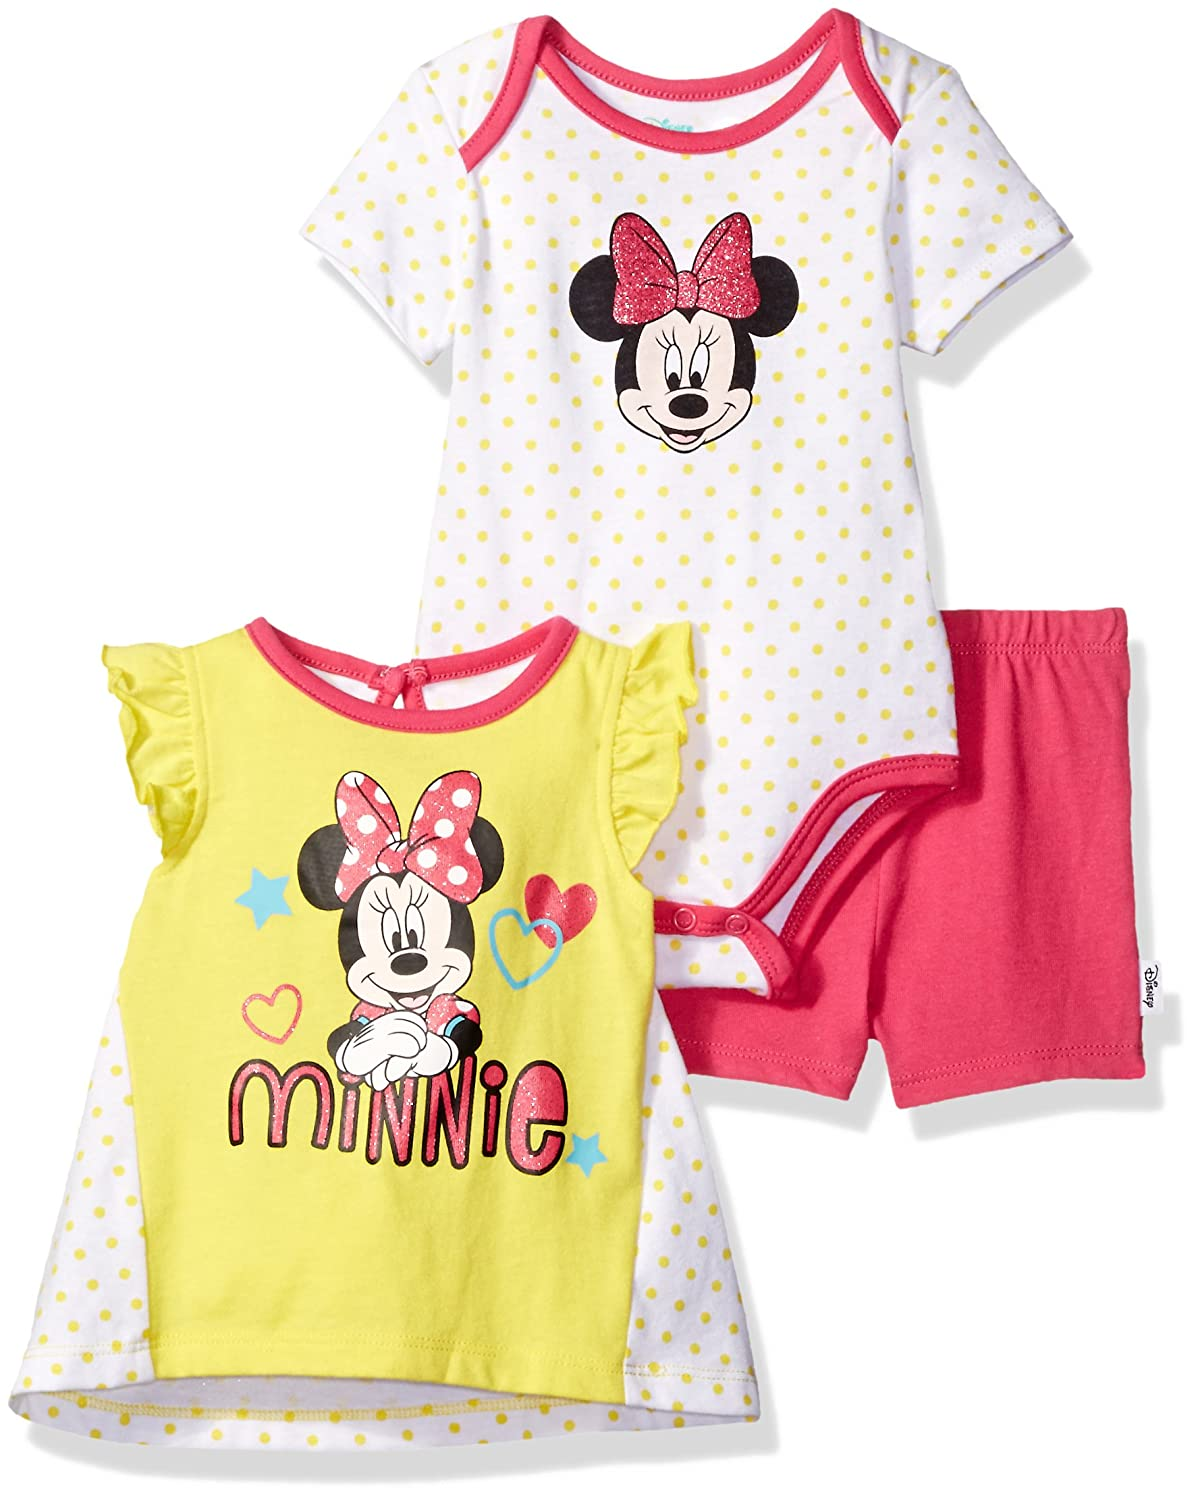 Disney Baby Girls' Minnie Mouse 3-Pack Top, Bodysuit and Short Set Mayfair Character Children' s Apparel 9NC03006-70